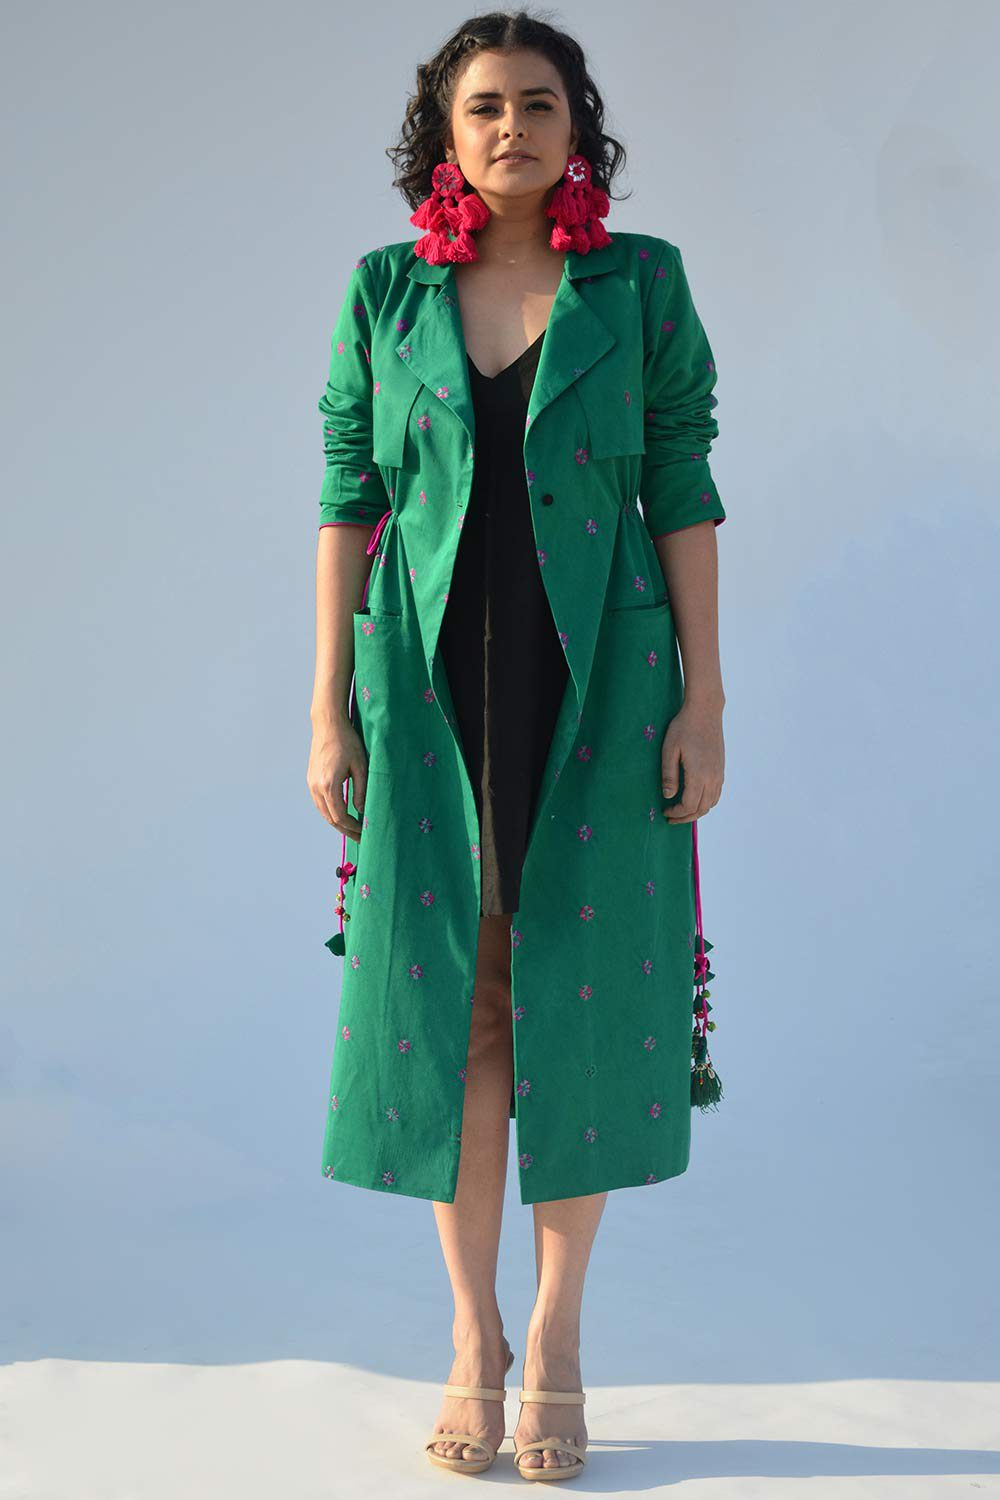 Green Bandhej Trench Jacket - Riviera Closet